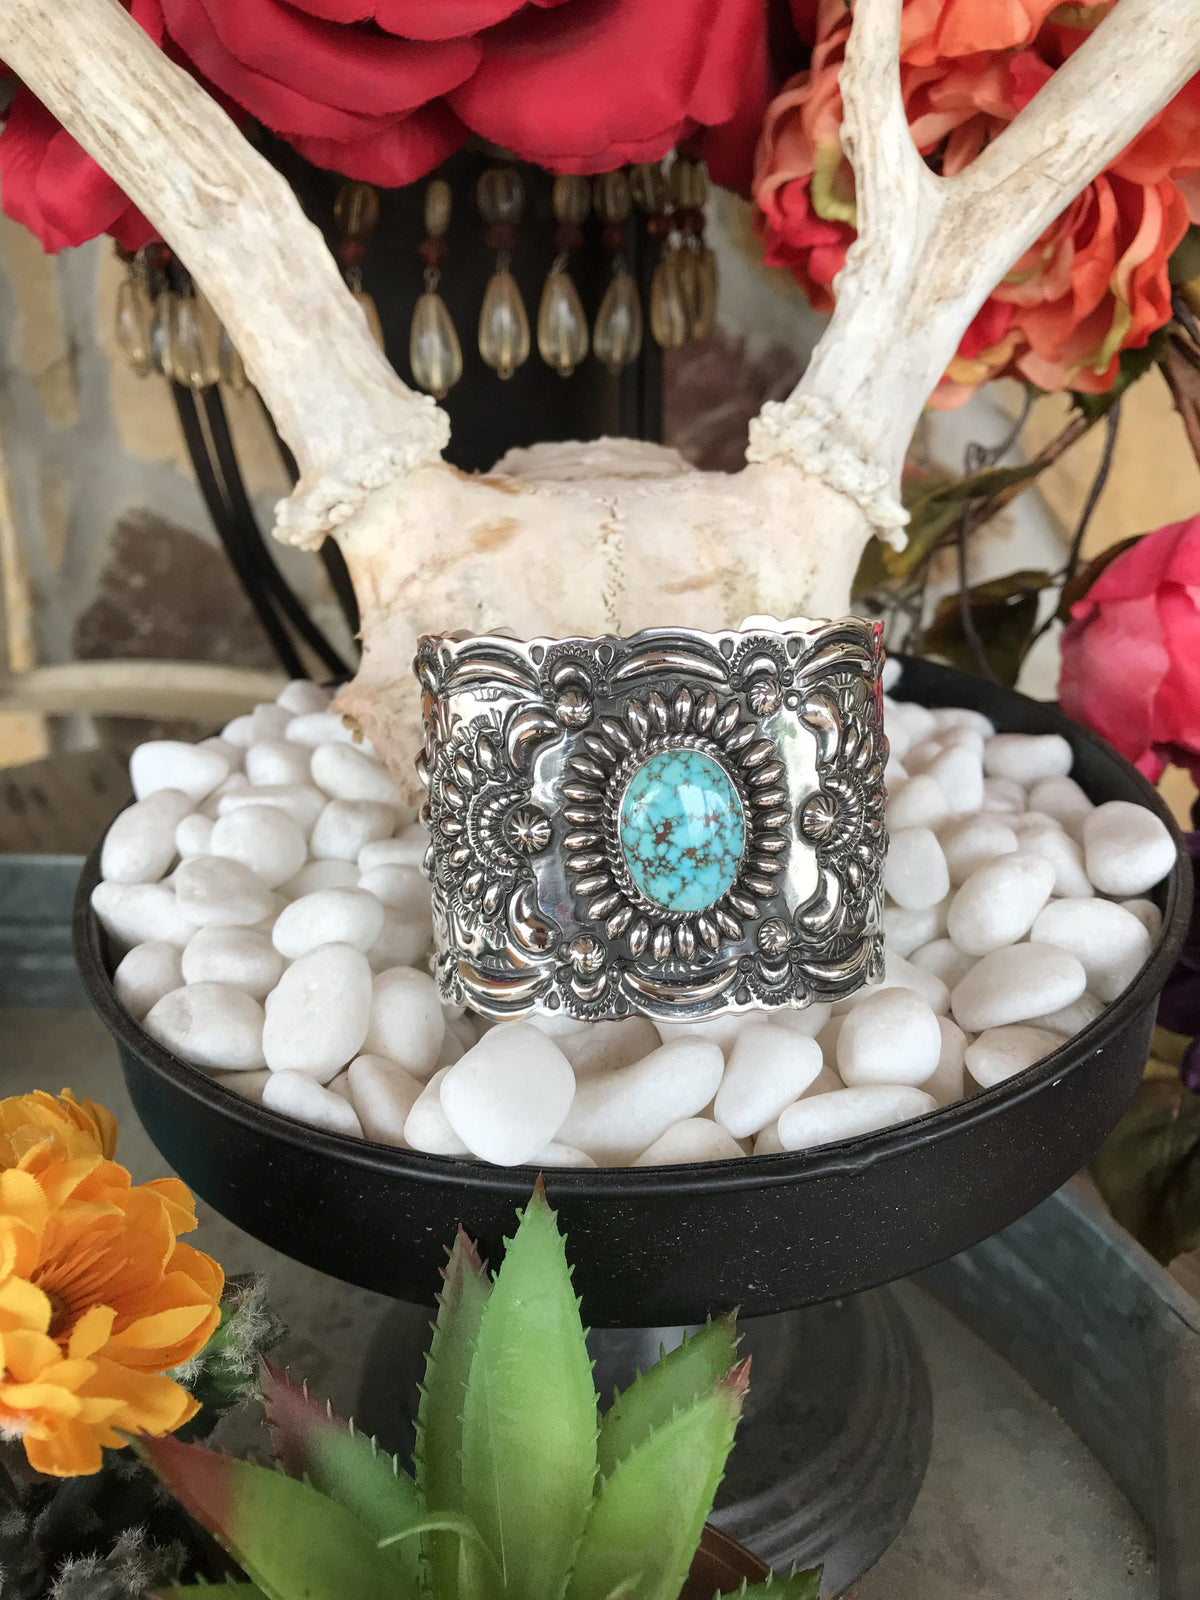 Ex-wide Turquoise Mt Stamped Cuff